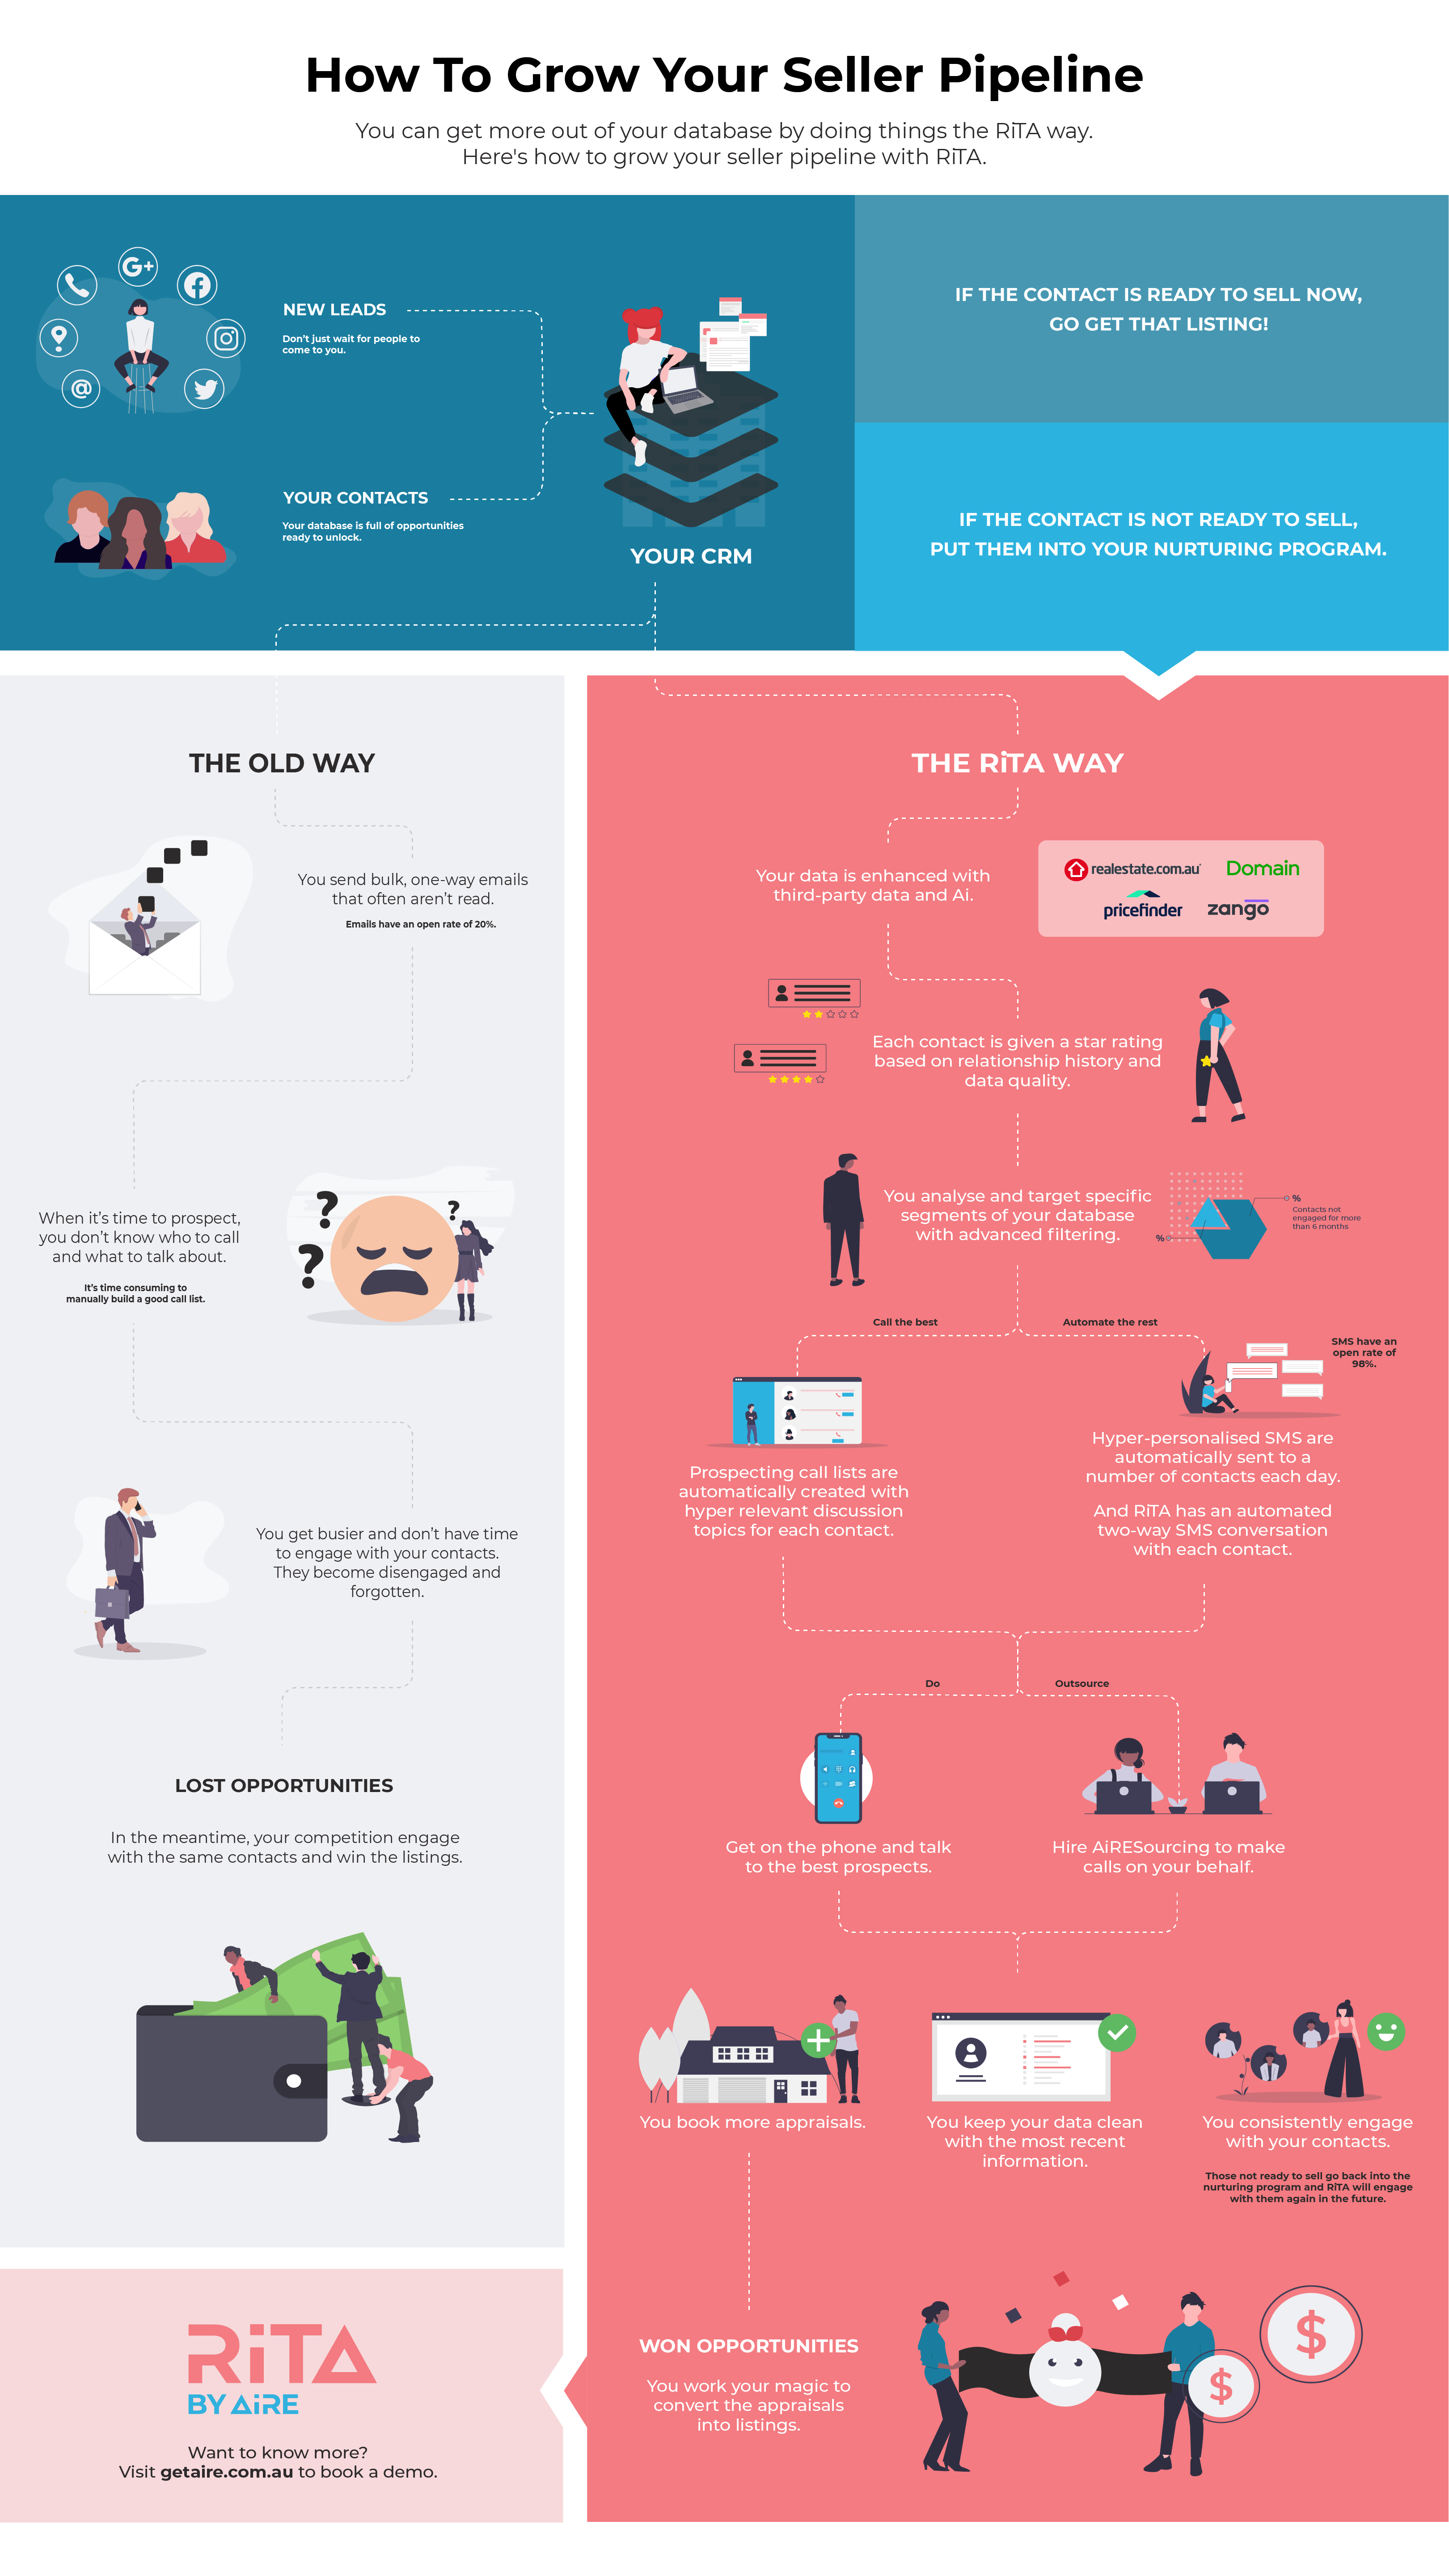 How to grow your seller pipeline (infographic)